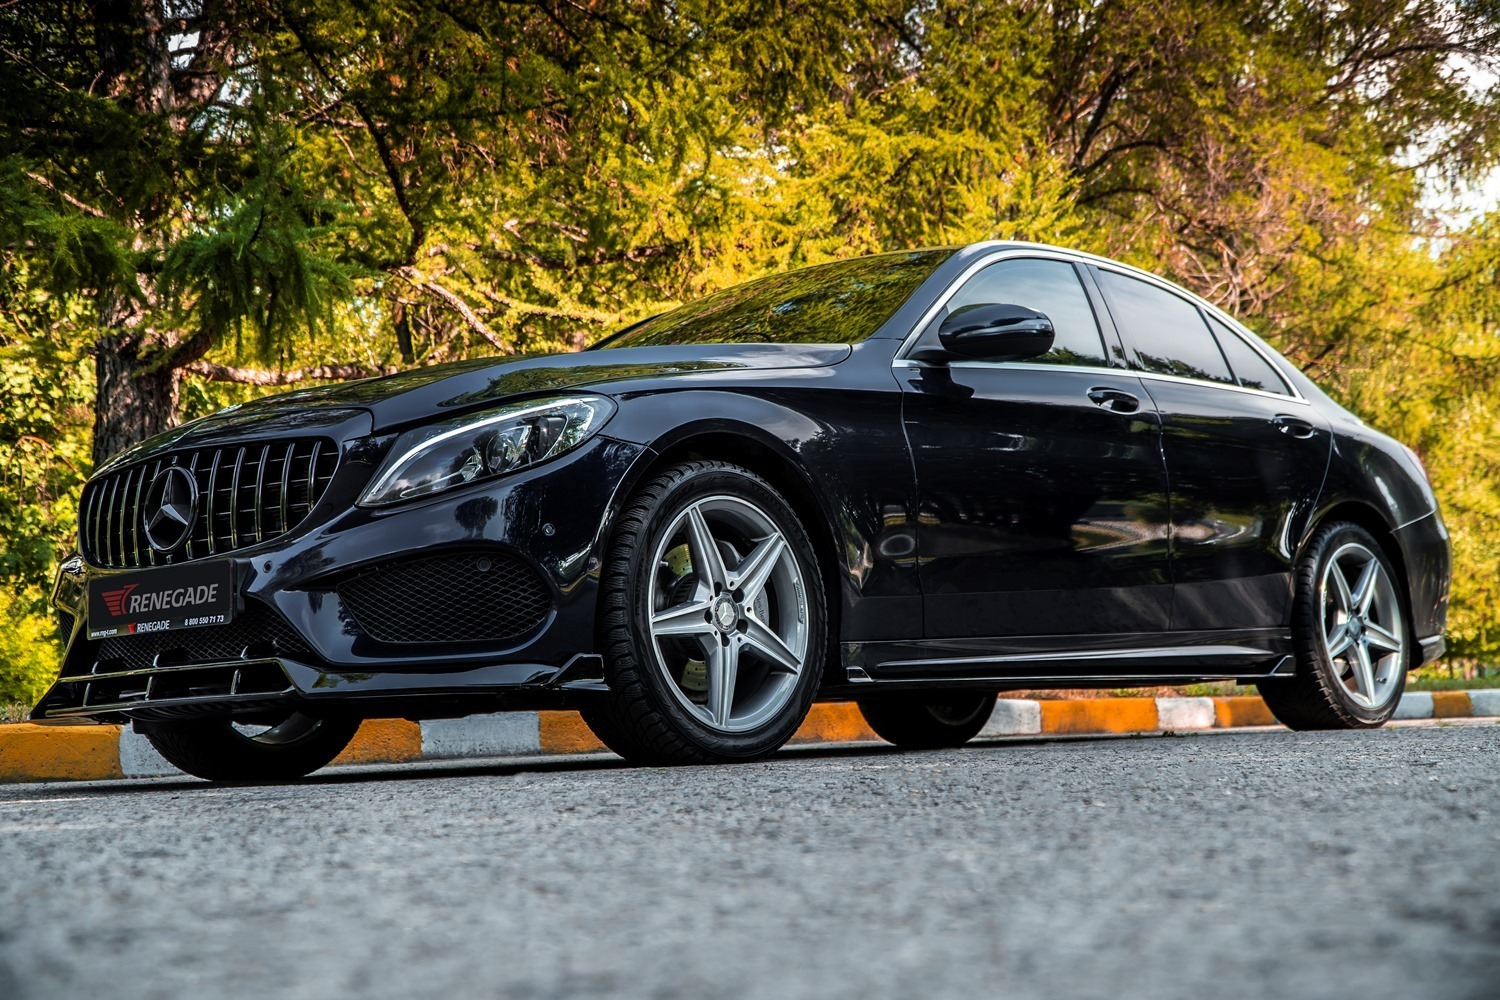 Renegade body kit for Mercedes Benz C-Class W205 new model